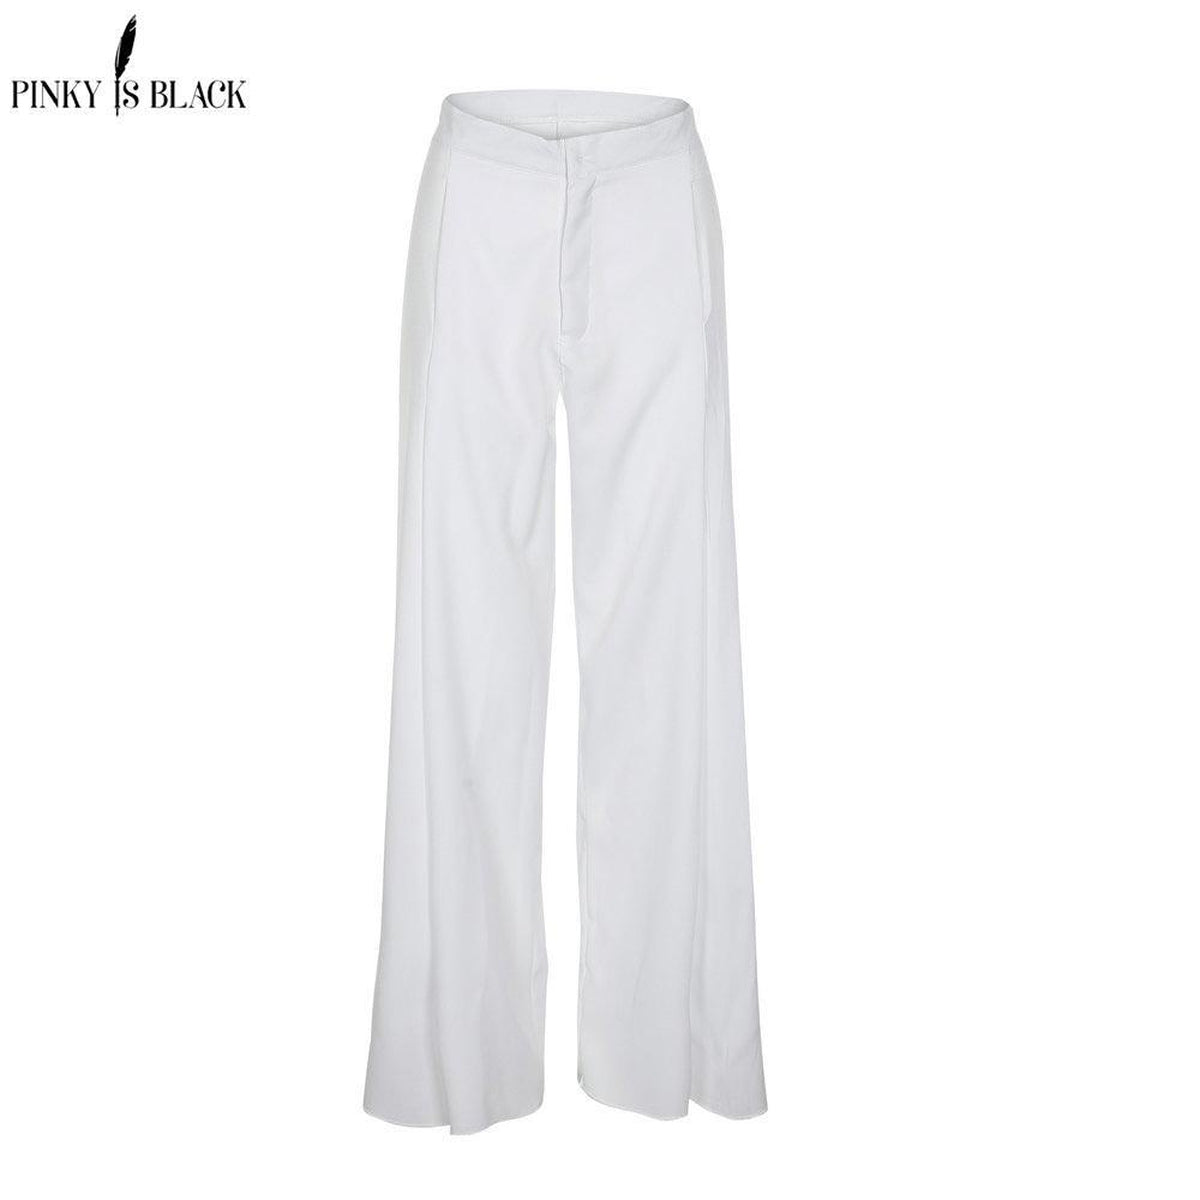 Pinky High Waist Front Fly Wide Leg Pants in White-Lookbook Boutique